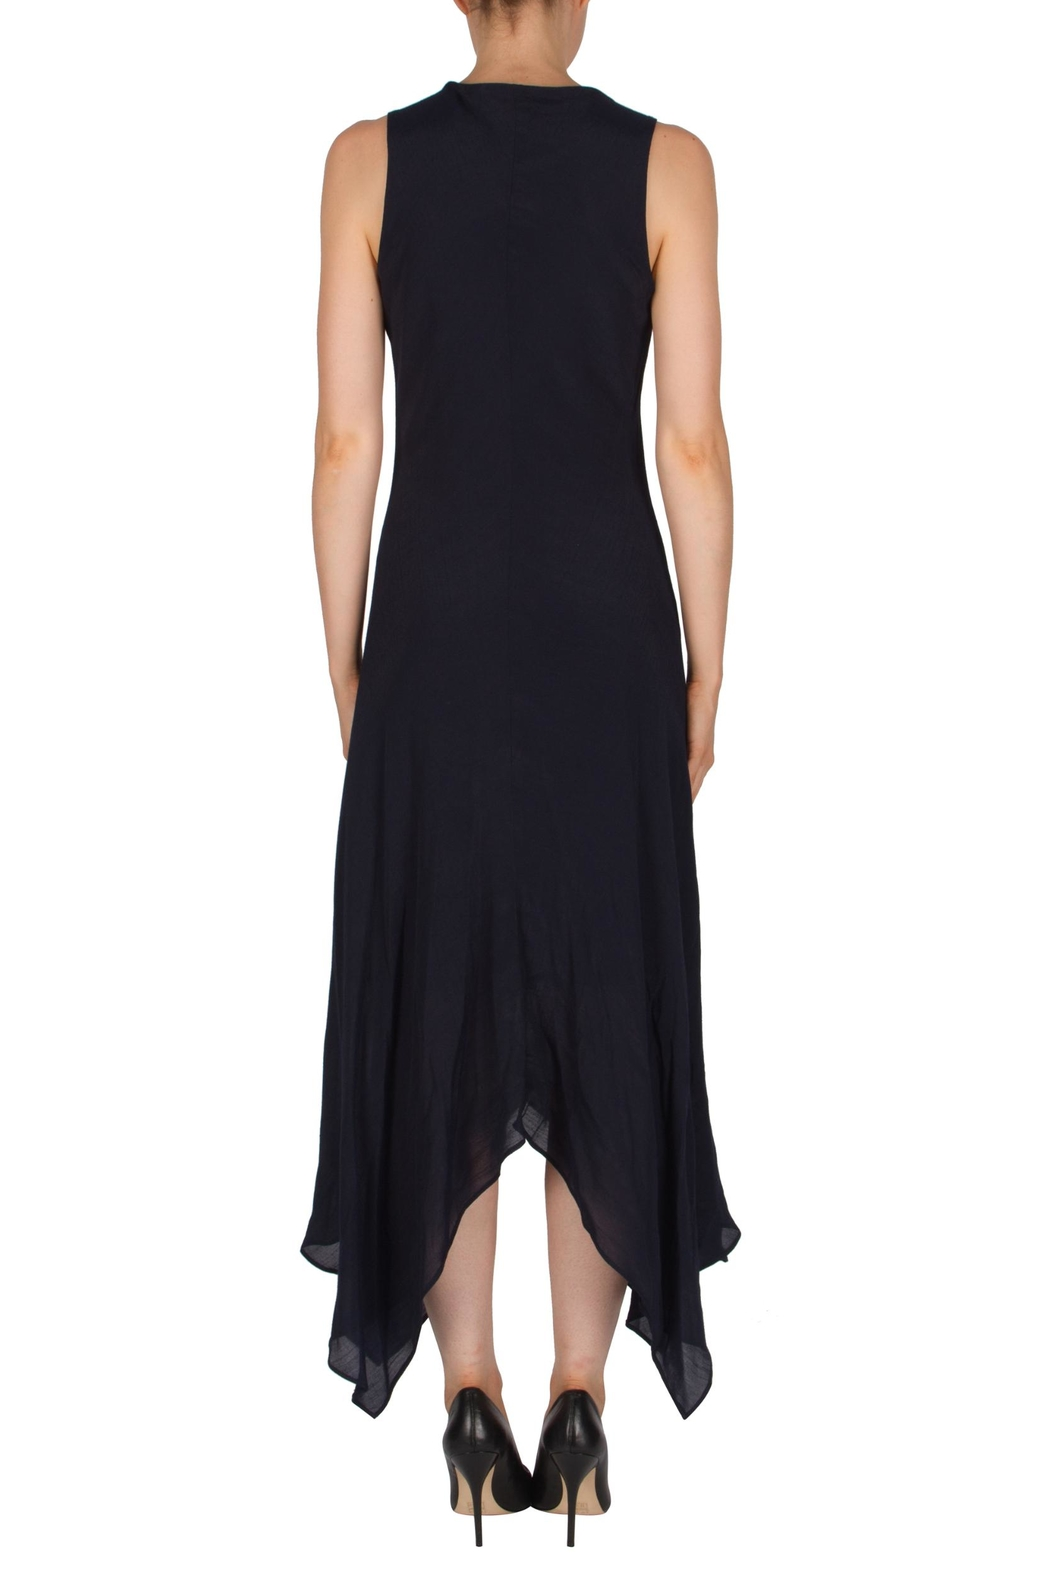 Joseph Ribkoff Lined Tank Dress - Side Cropped Image